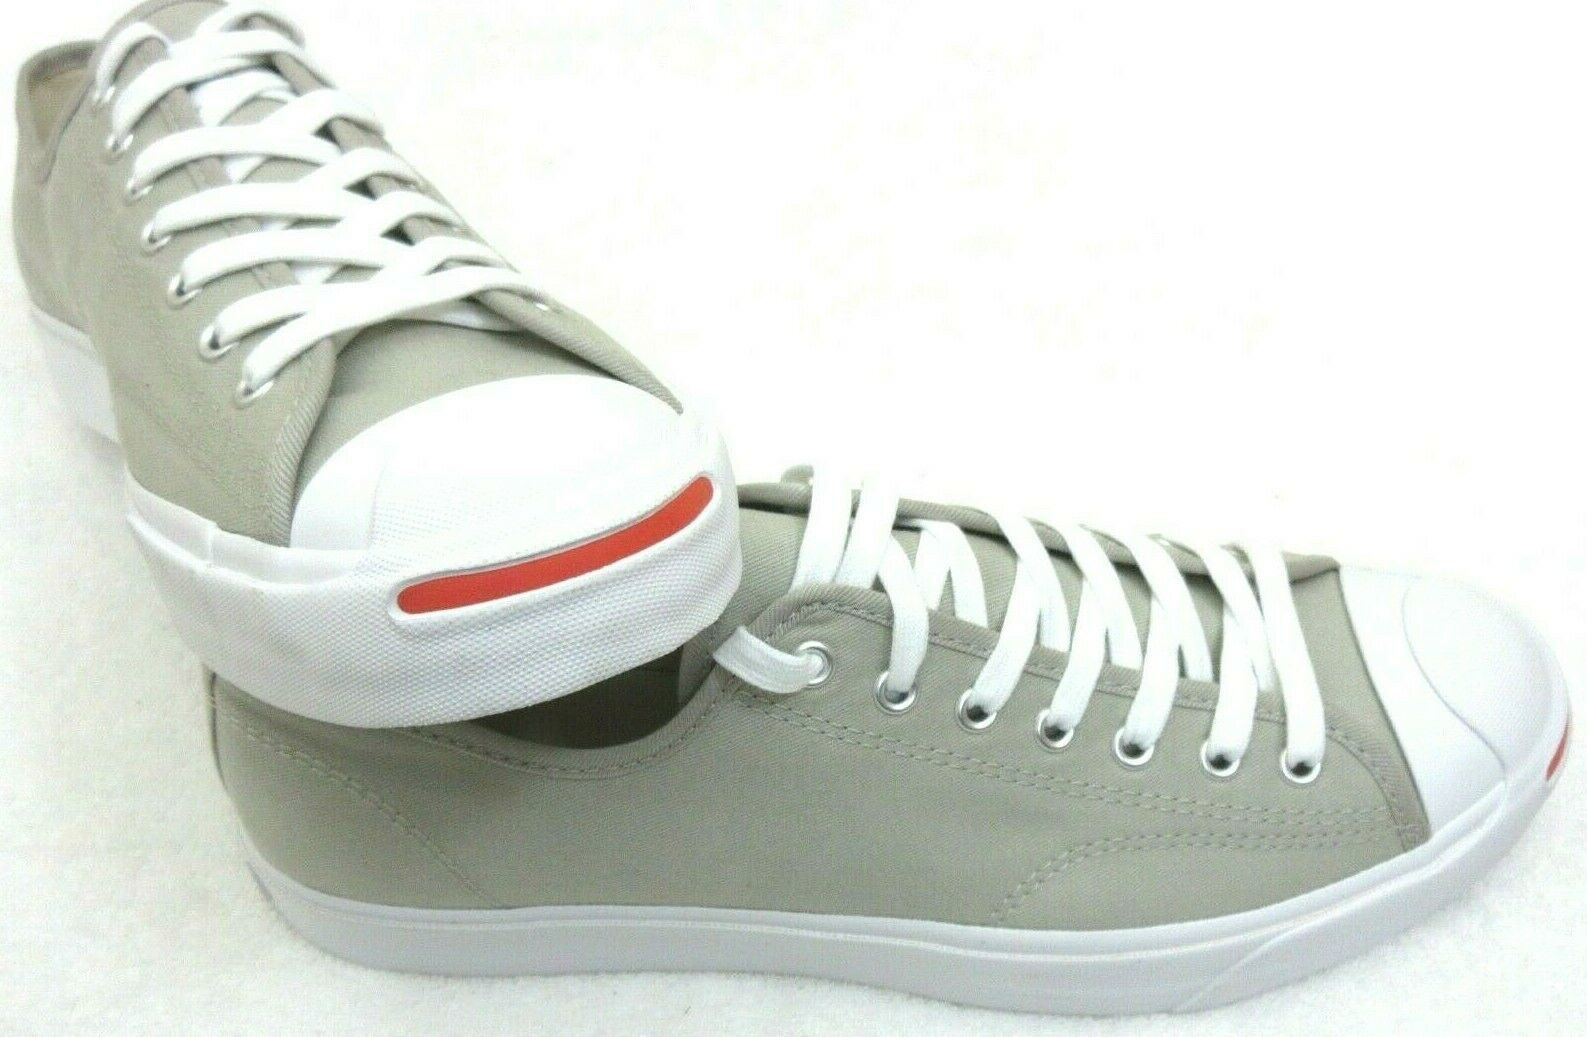 Converse Mens Jack Purcell OX Canvas Birch Bark White Habanero Red Shoes Sz 9.5 image 2